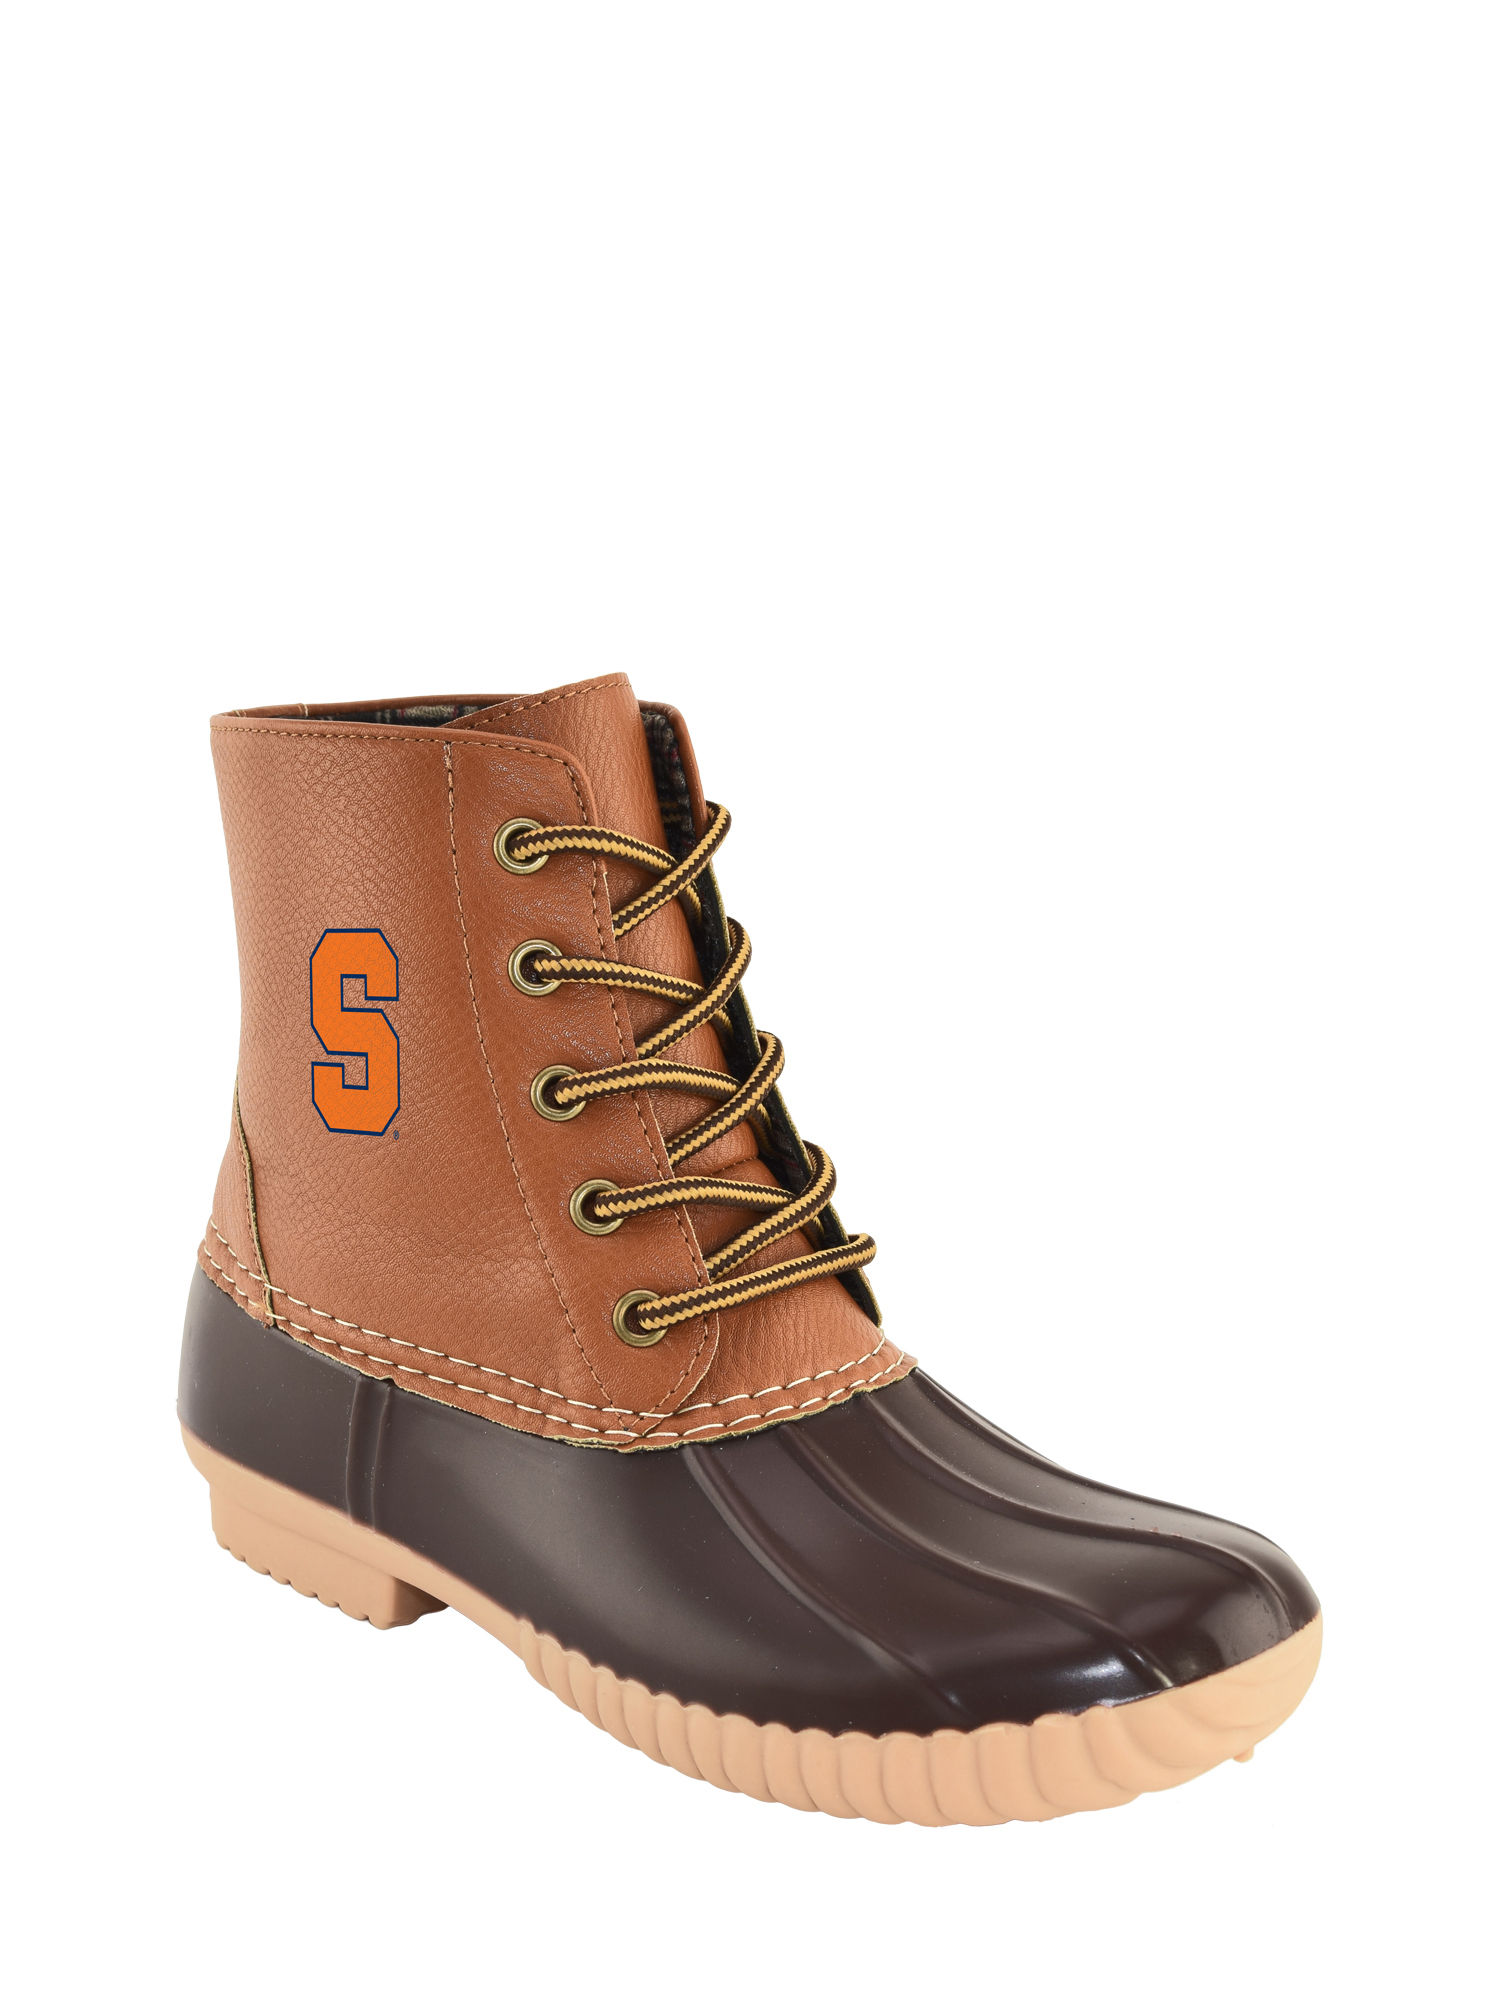 NCAA Women's Syracuse -High Duck Boot by Jordache LTD